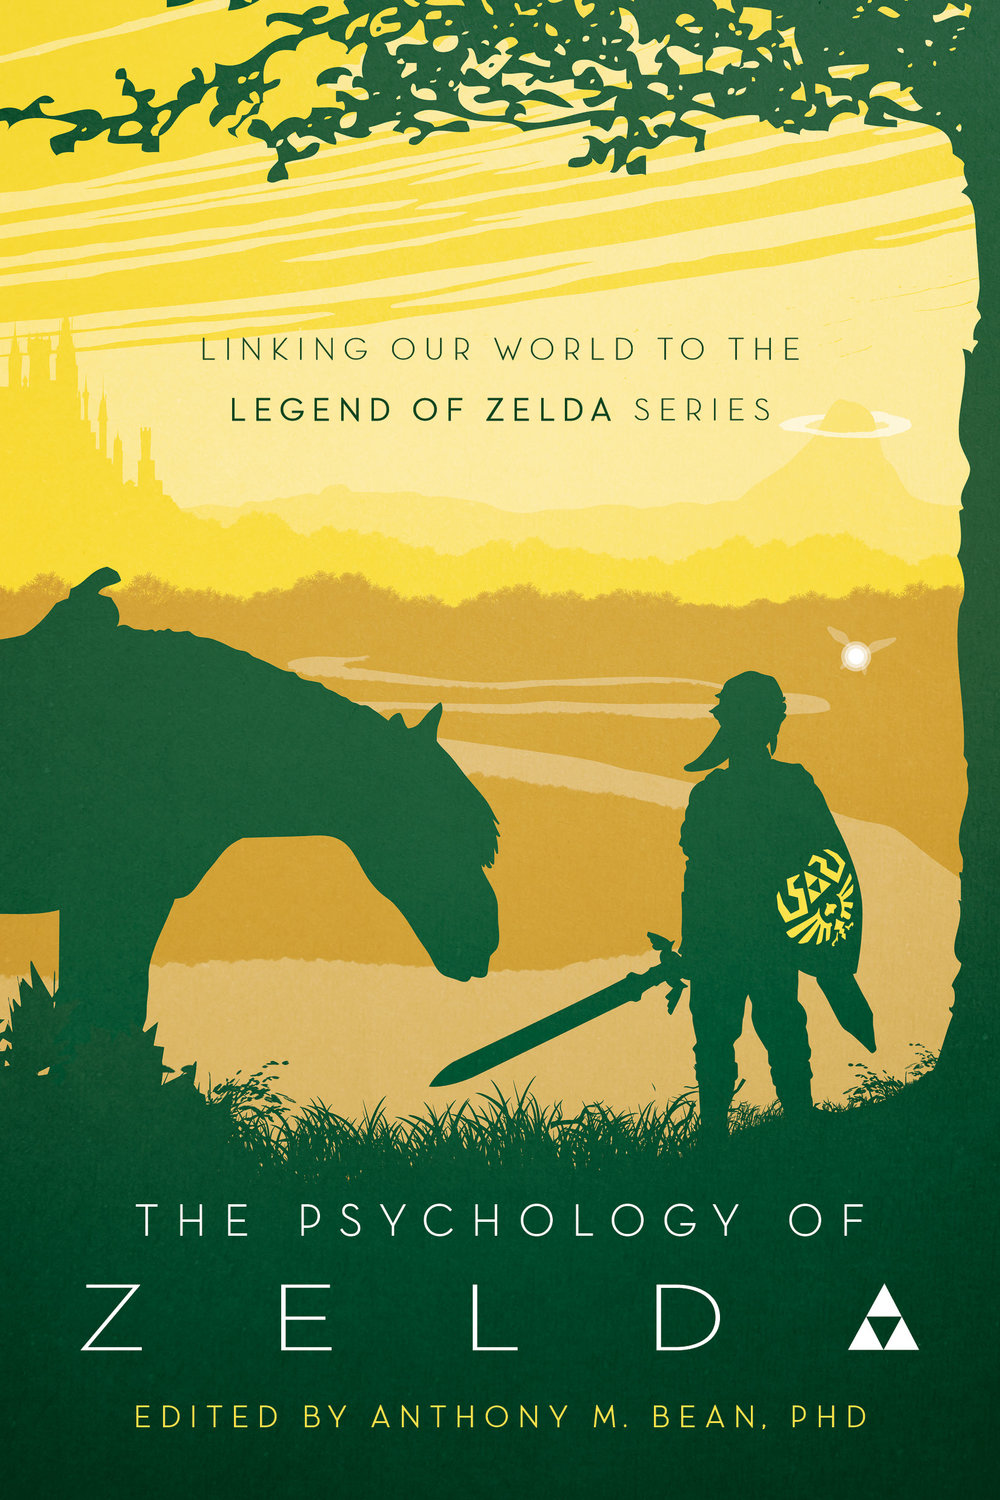 - Bean, A. M. (2019). The Psychology of Zelda: Linking Our World to the Legend of Zelda Series. Ben Bella.